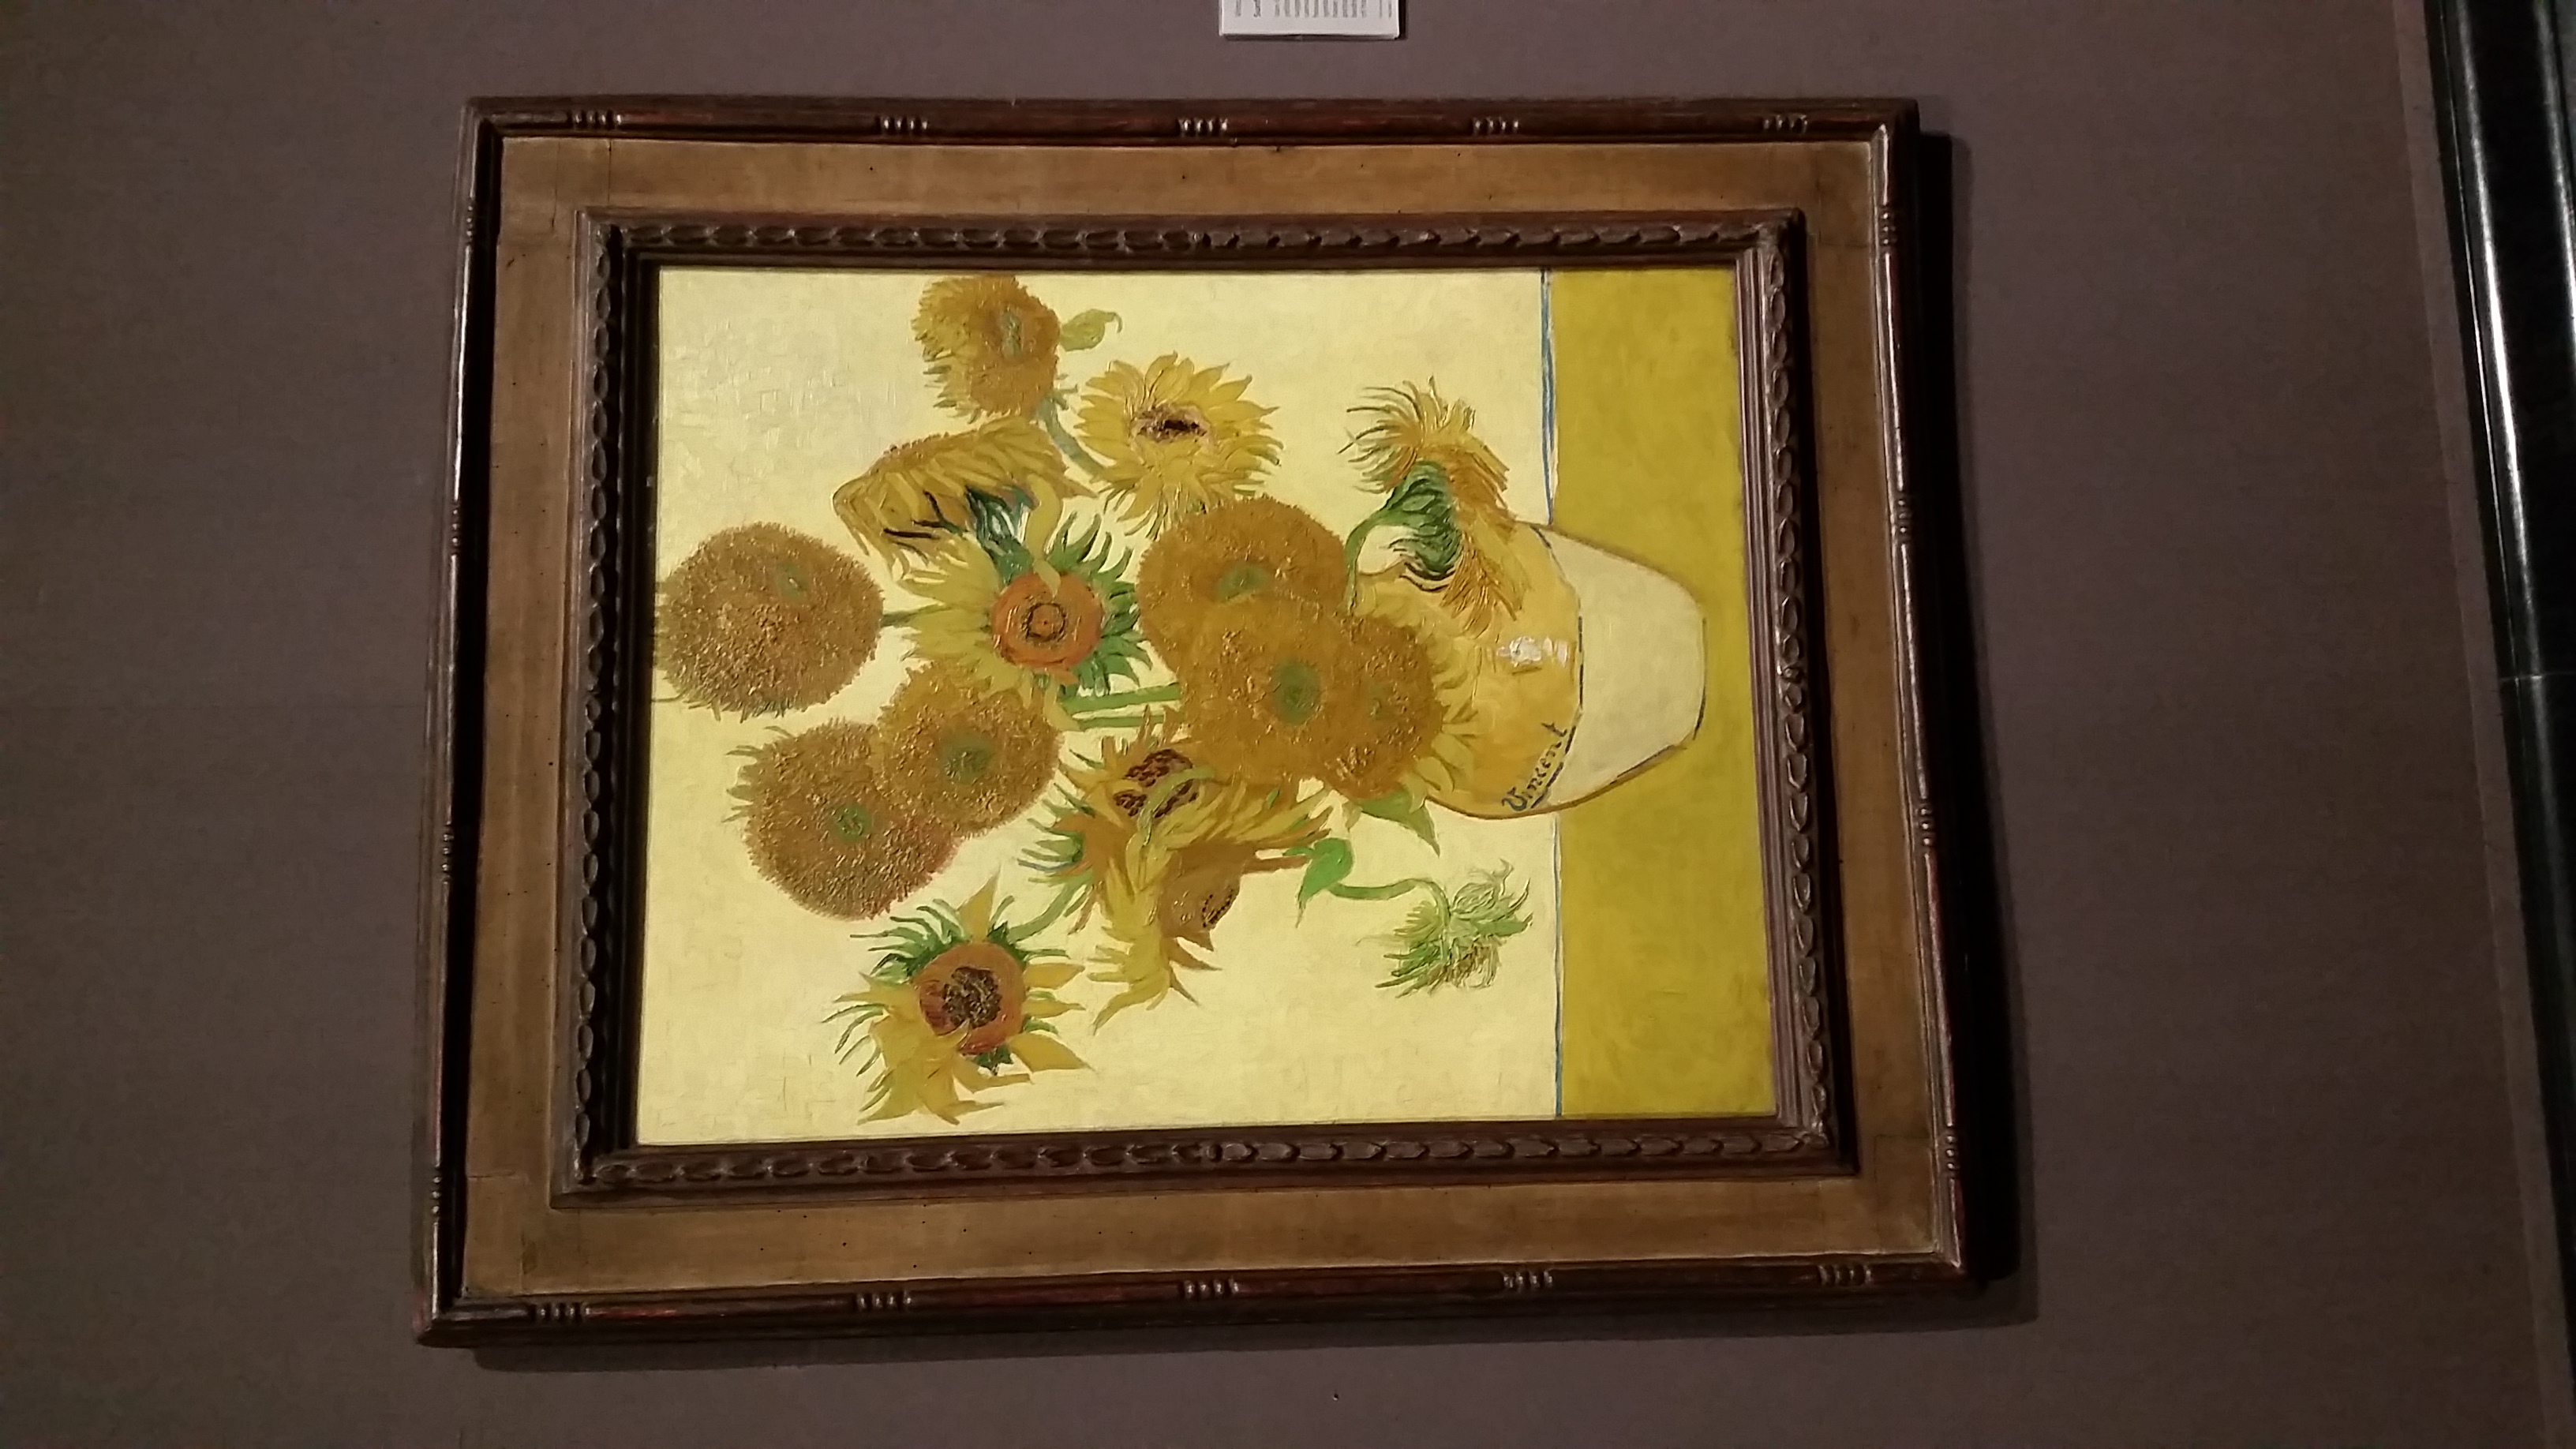 Tour Semanal de National Gallery, Cuadro de vincent van gogh